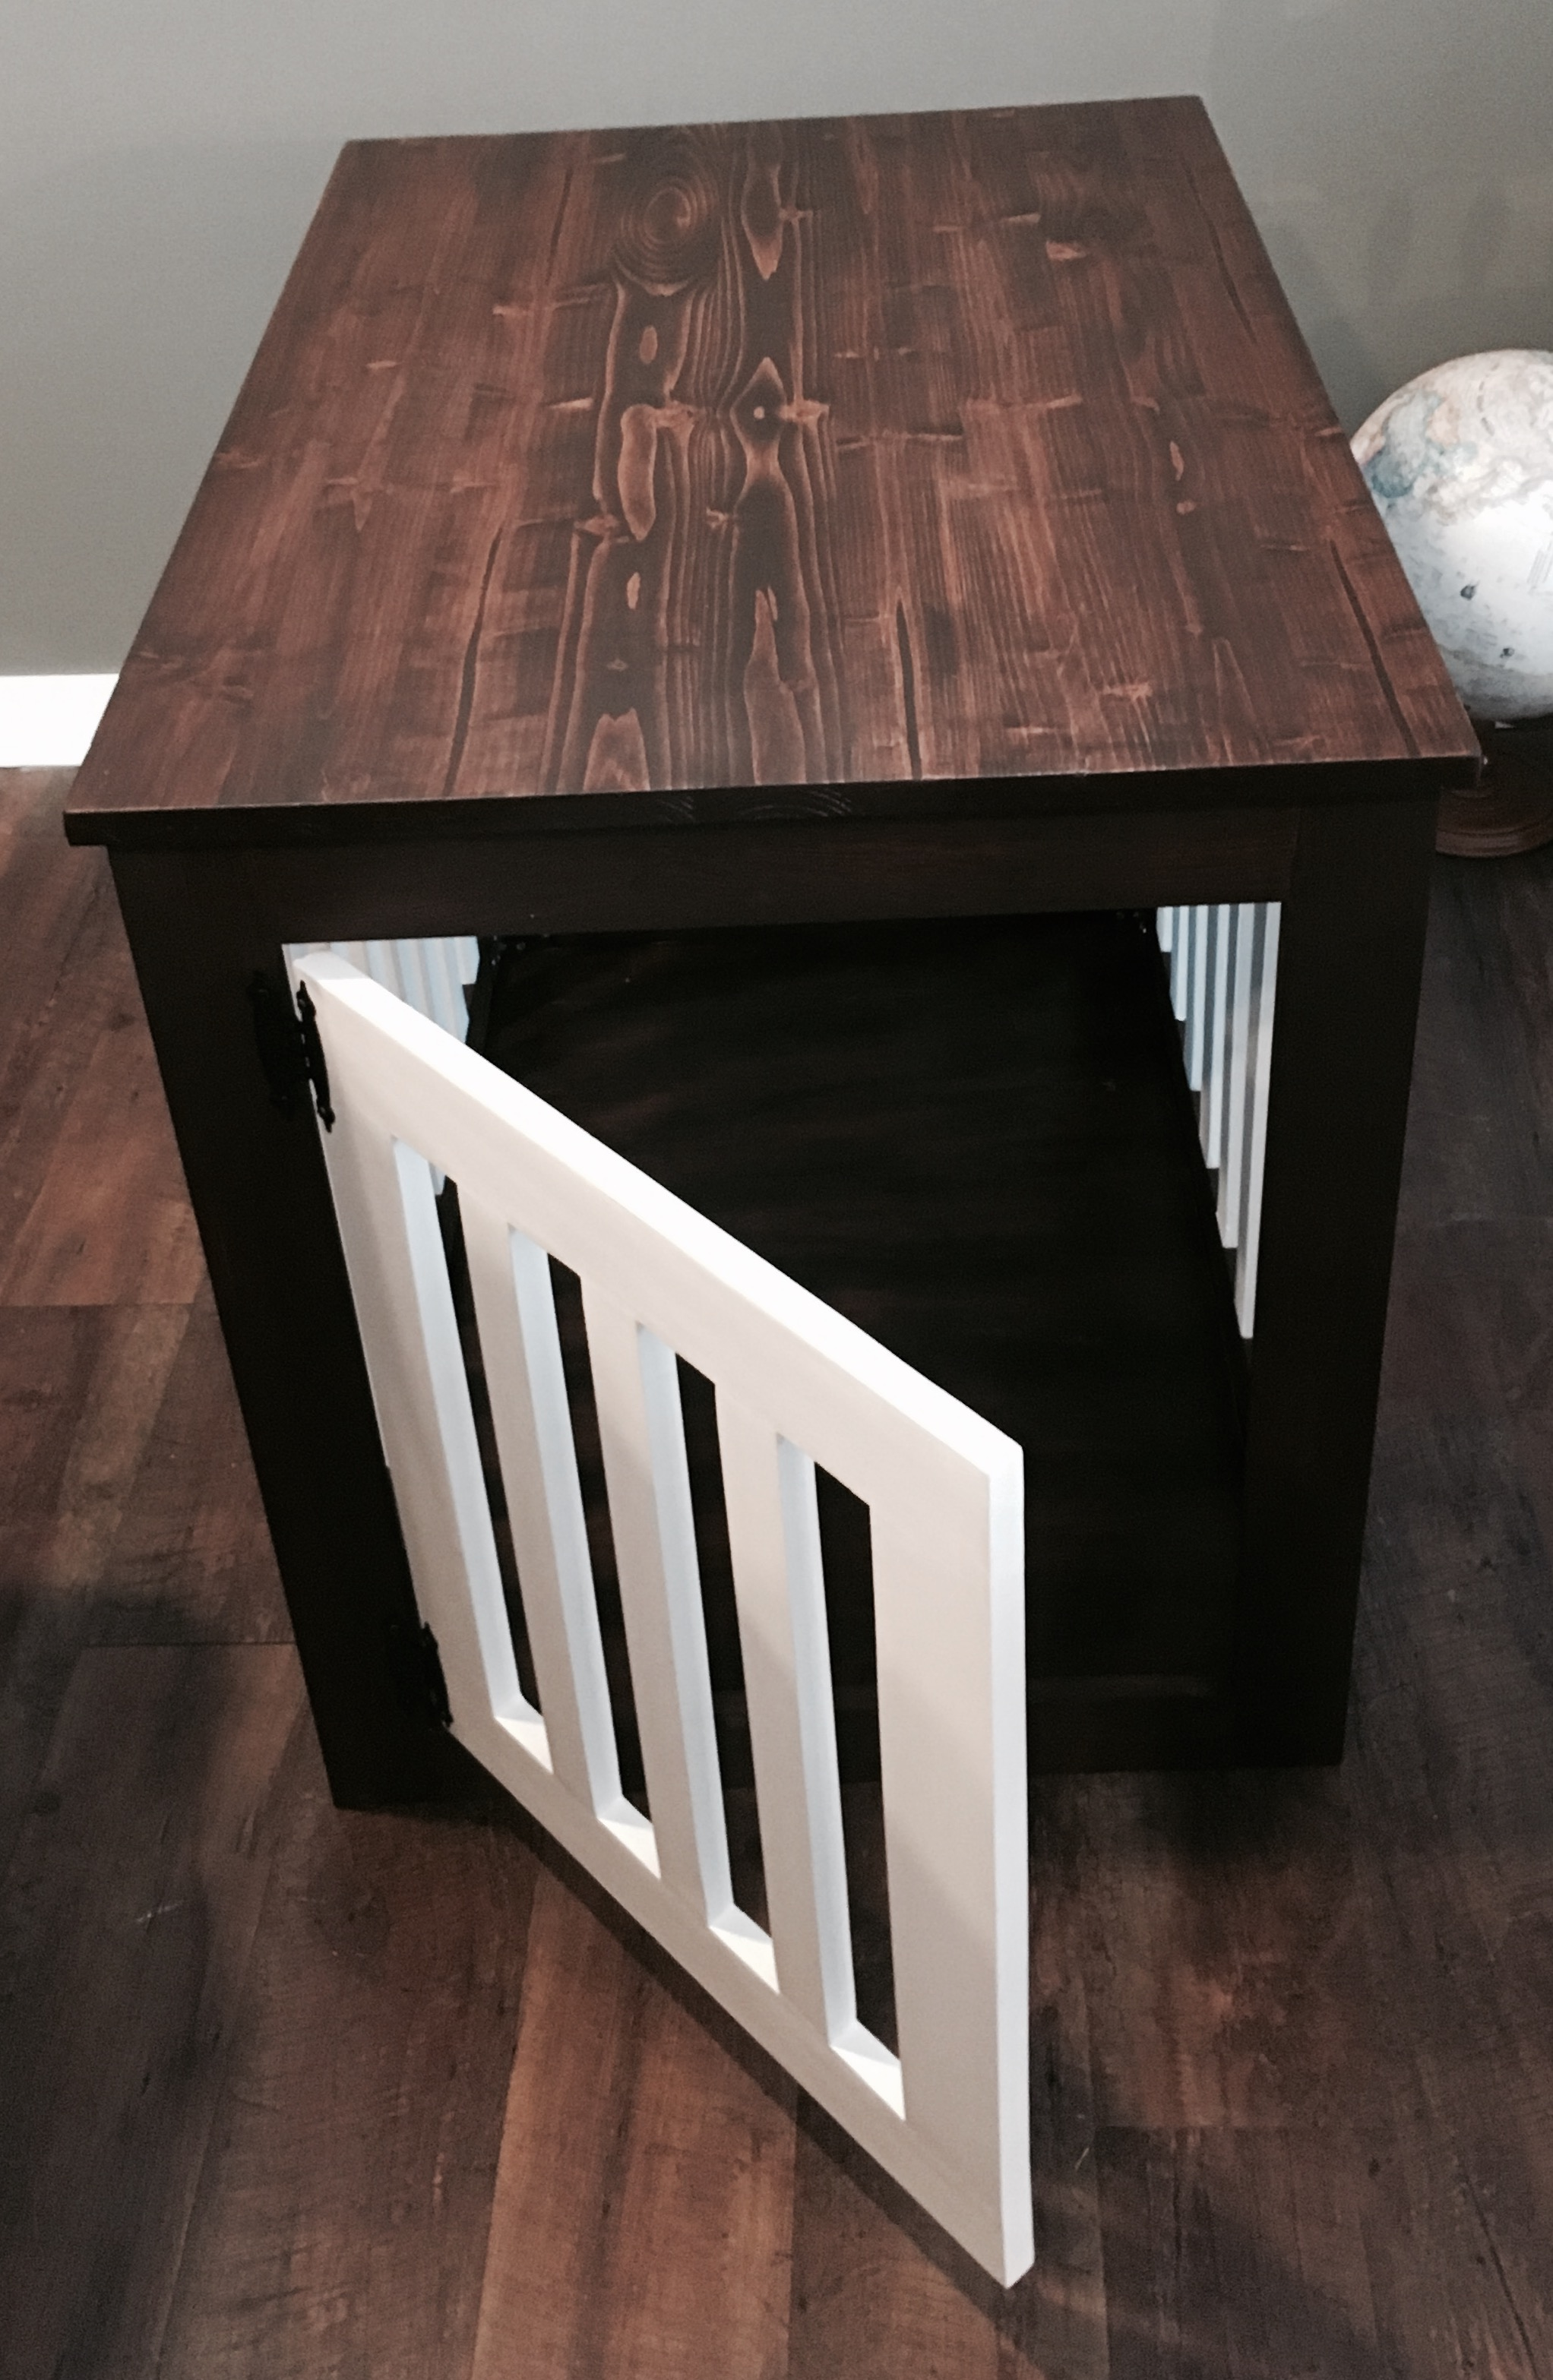 Ana White Wood Dog Crate End Table Diy Projects